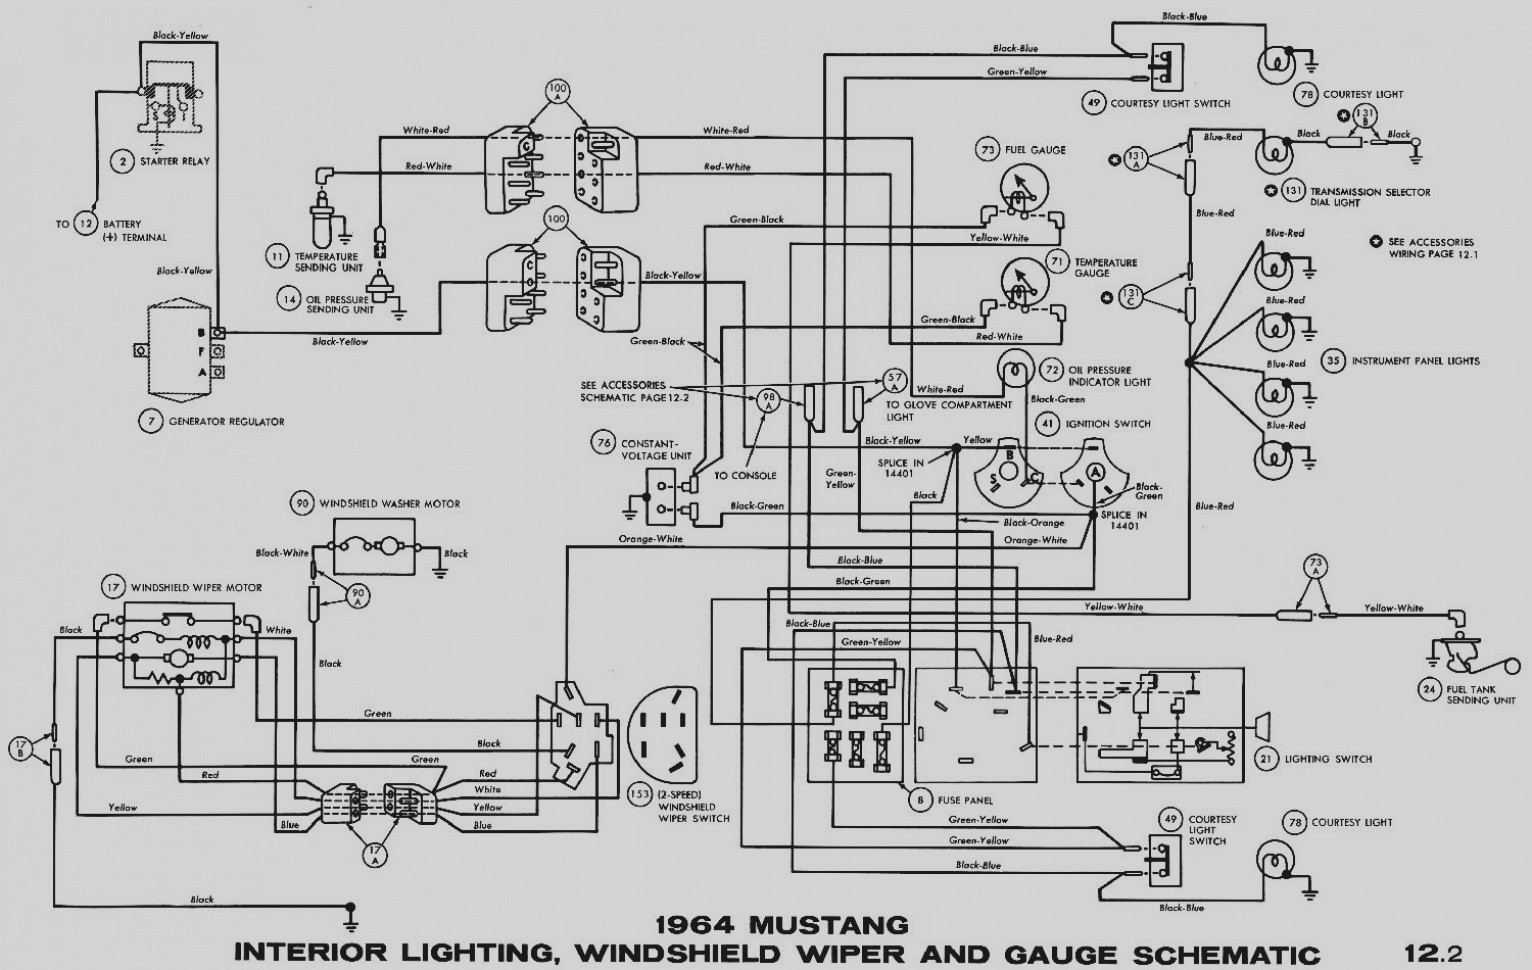 Ford Torino Tail Light Wiring Diagram | Wiring Liry on 1970 ford ranchero suspension, 1971 ford mustang wiring diagram, 1970 chevy nova wiring diagram, 1970 chevrolet chevelle wiring diagram, 1970 plymouth gtx wiring diagram, 1970 pontiac grand prix wiring diagram, 1978 ford bronco wiring diagram, 1970 buick skylark wiring diagram, 1970 ford ranchero wheels, 1970 plymouth barracuda wiring diagram, 1970 mercury cougar wiring diagram, 1970 dodge challenger wiring diagram, 1972 ford gran torino wiring diagram, 1970 dodge a100 wiring diagram, 1970 ford ranchero seats, 1970 chrysler 300 wiring diagram, 1970 ford ranchero brochure, 1970 pontiac lemans wiring diagram, 1970 mercury montego wiring diagram, 1970 ford ranchero parts,